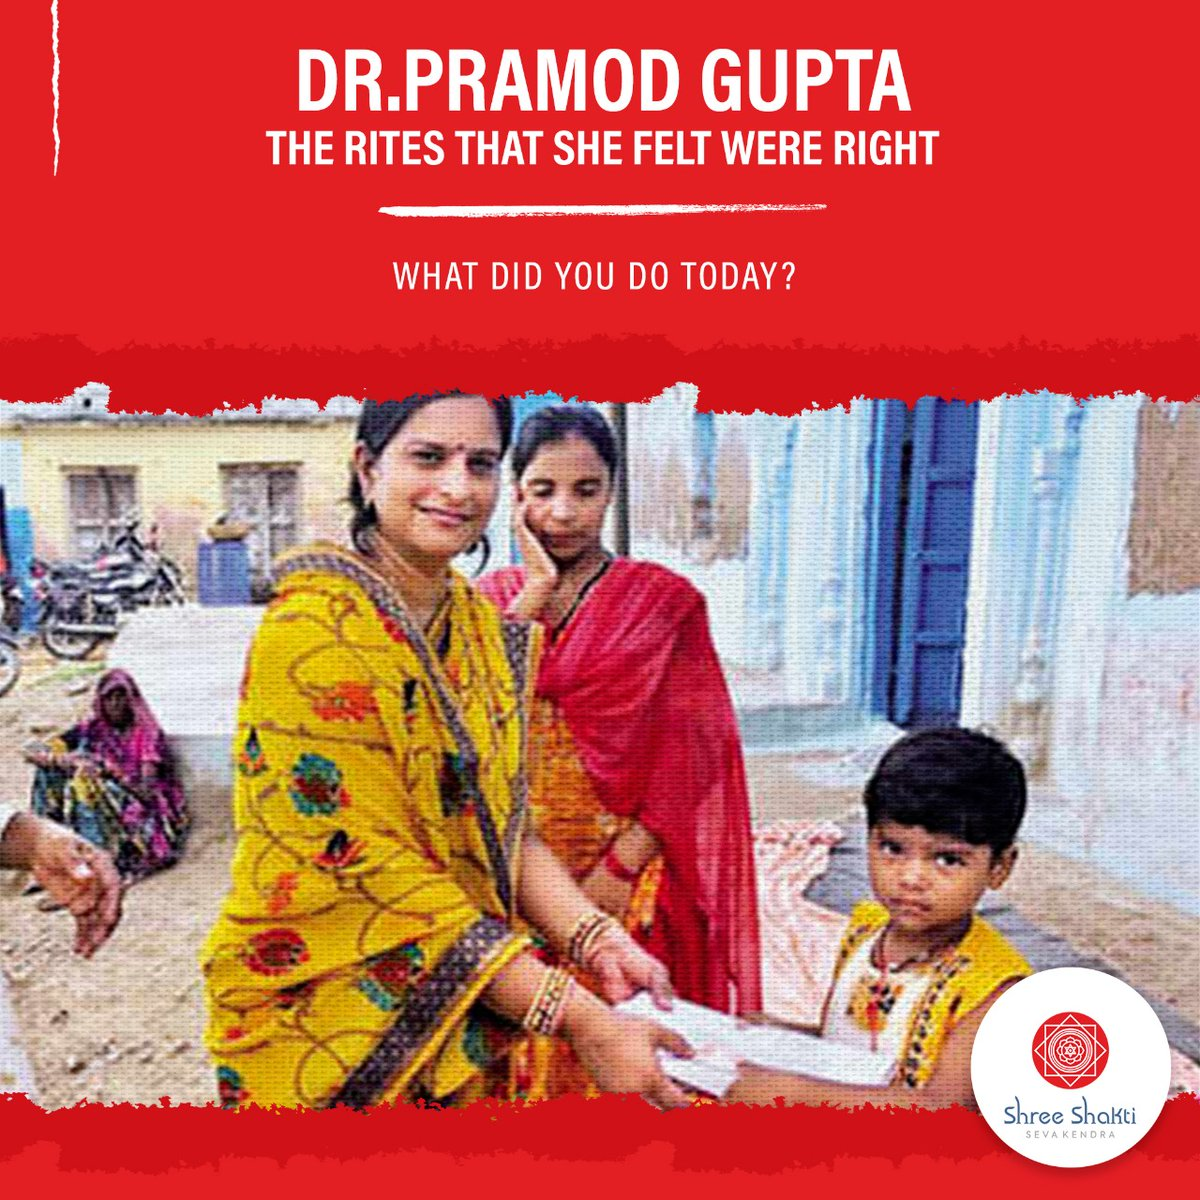 Dr. Pramod Gupta of Jhansi recently performed the Shaardh rites for her mother, and in a heart warming twist in tradition decided to donate Fixed Deposits worth INR 5000 to 25 girls in her mother's village instead.   #SSSK #Holisticeducation #Allrounder #Help #Brightfuture https://t.co/LD9vnW2tnp